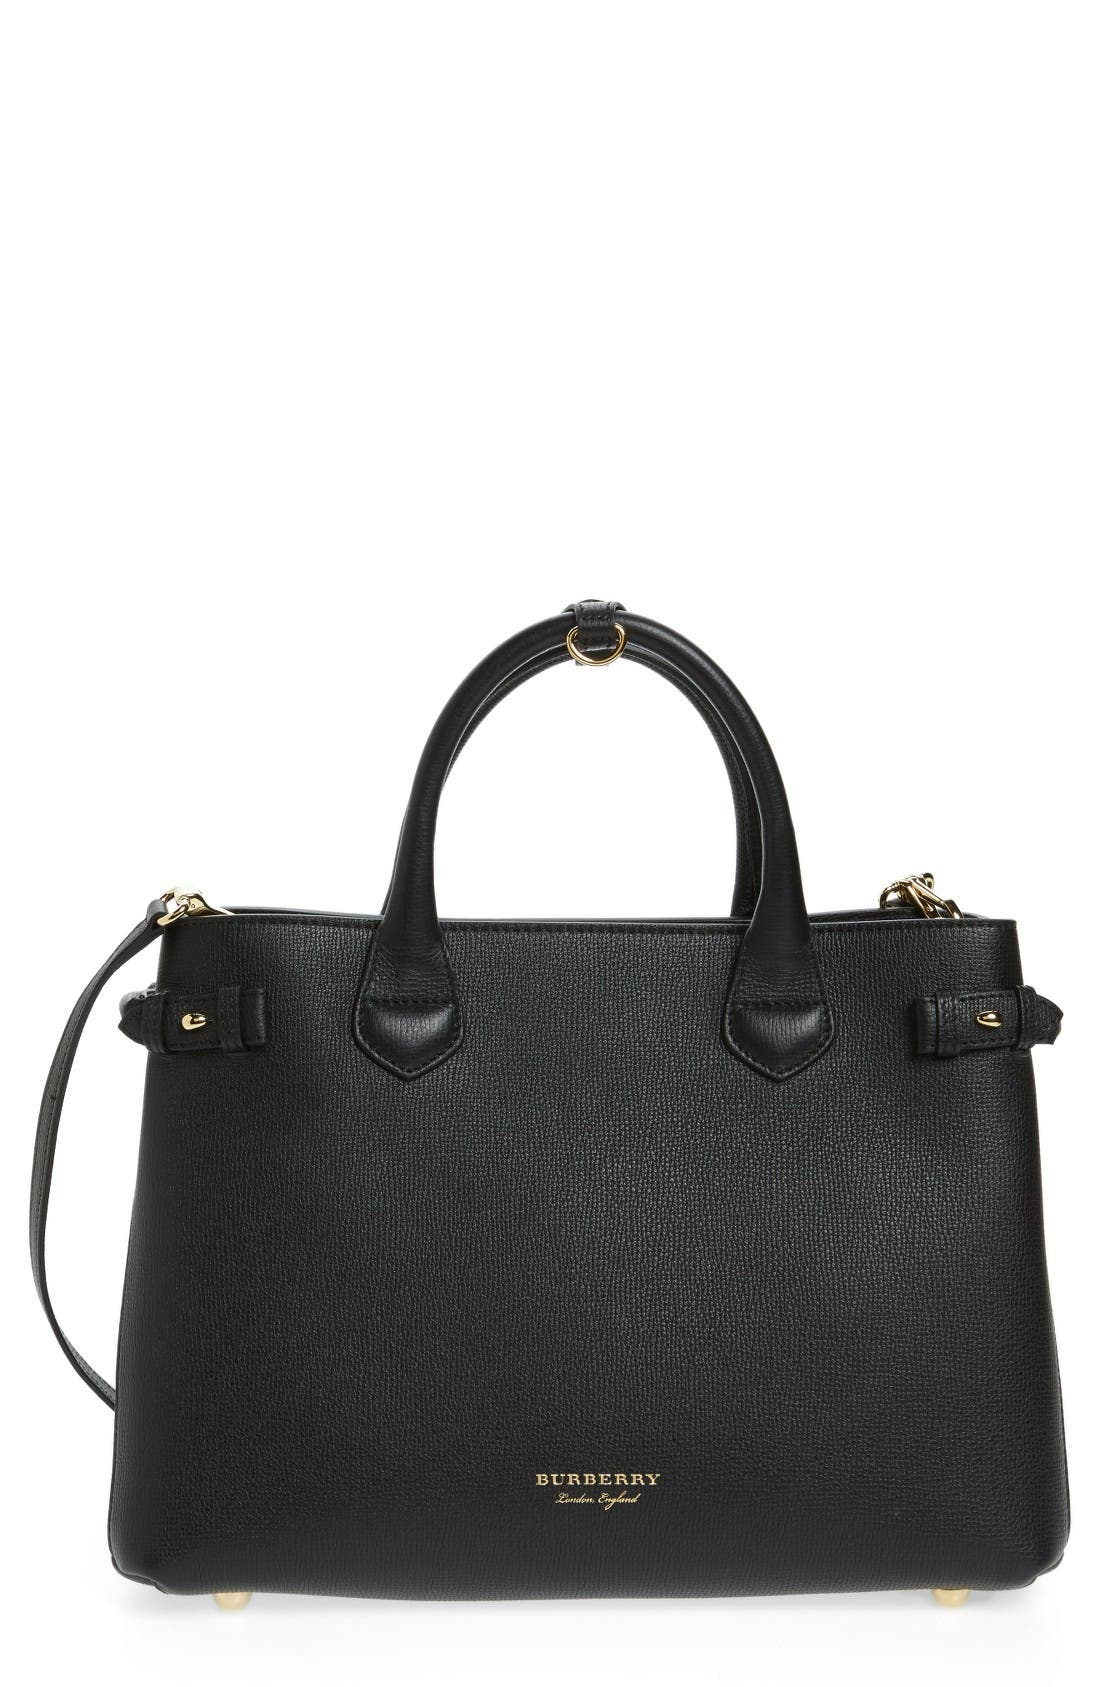 Main Image - Burberry Medium Banner House Check Leather Tote